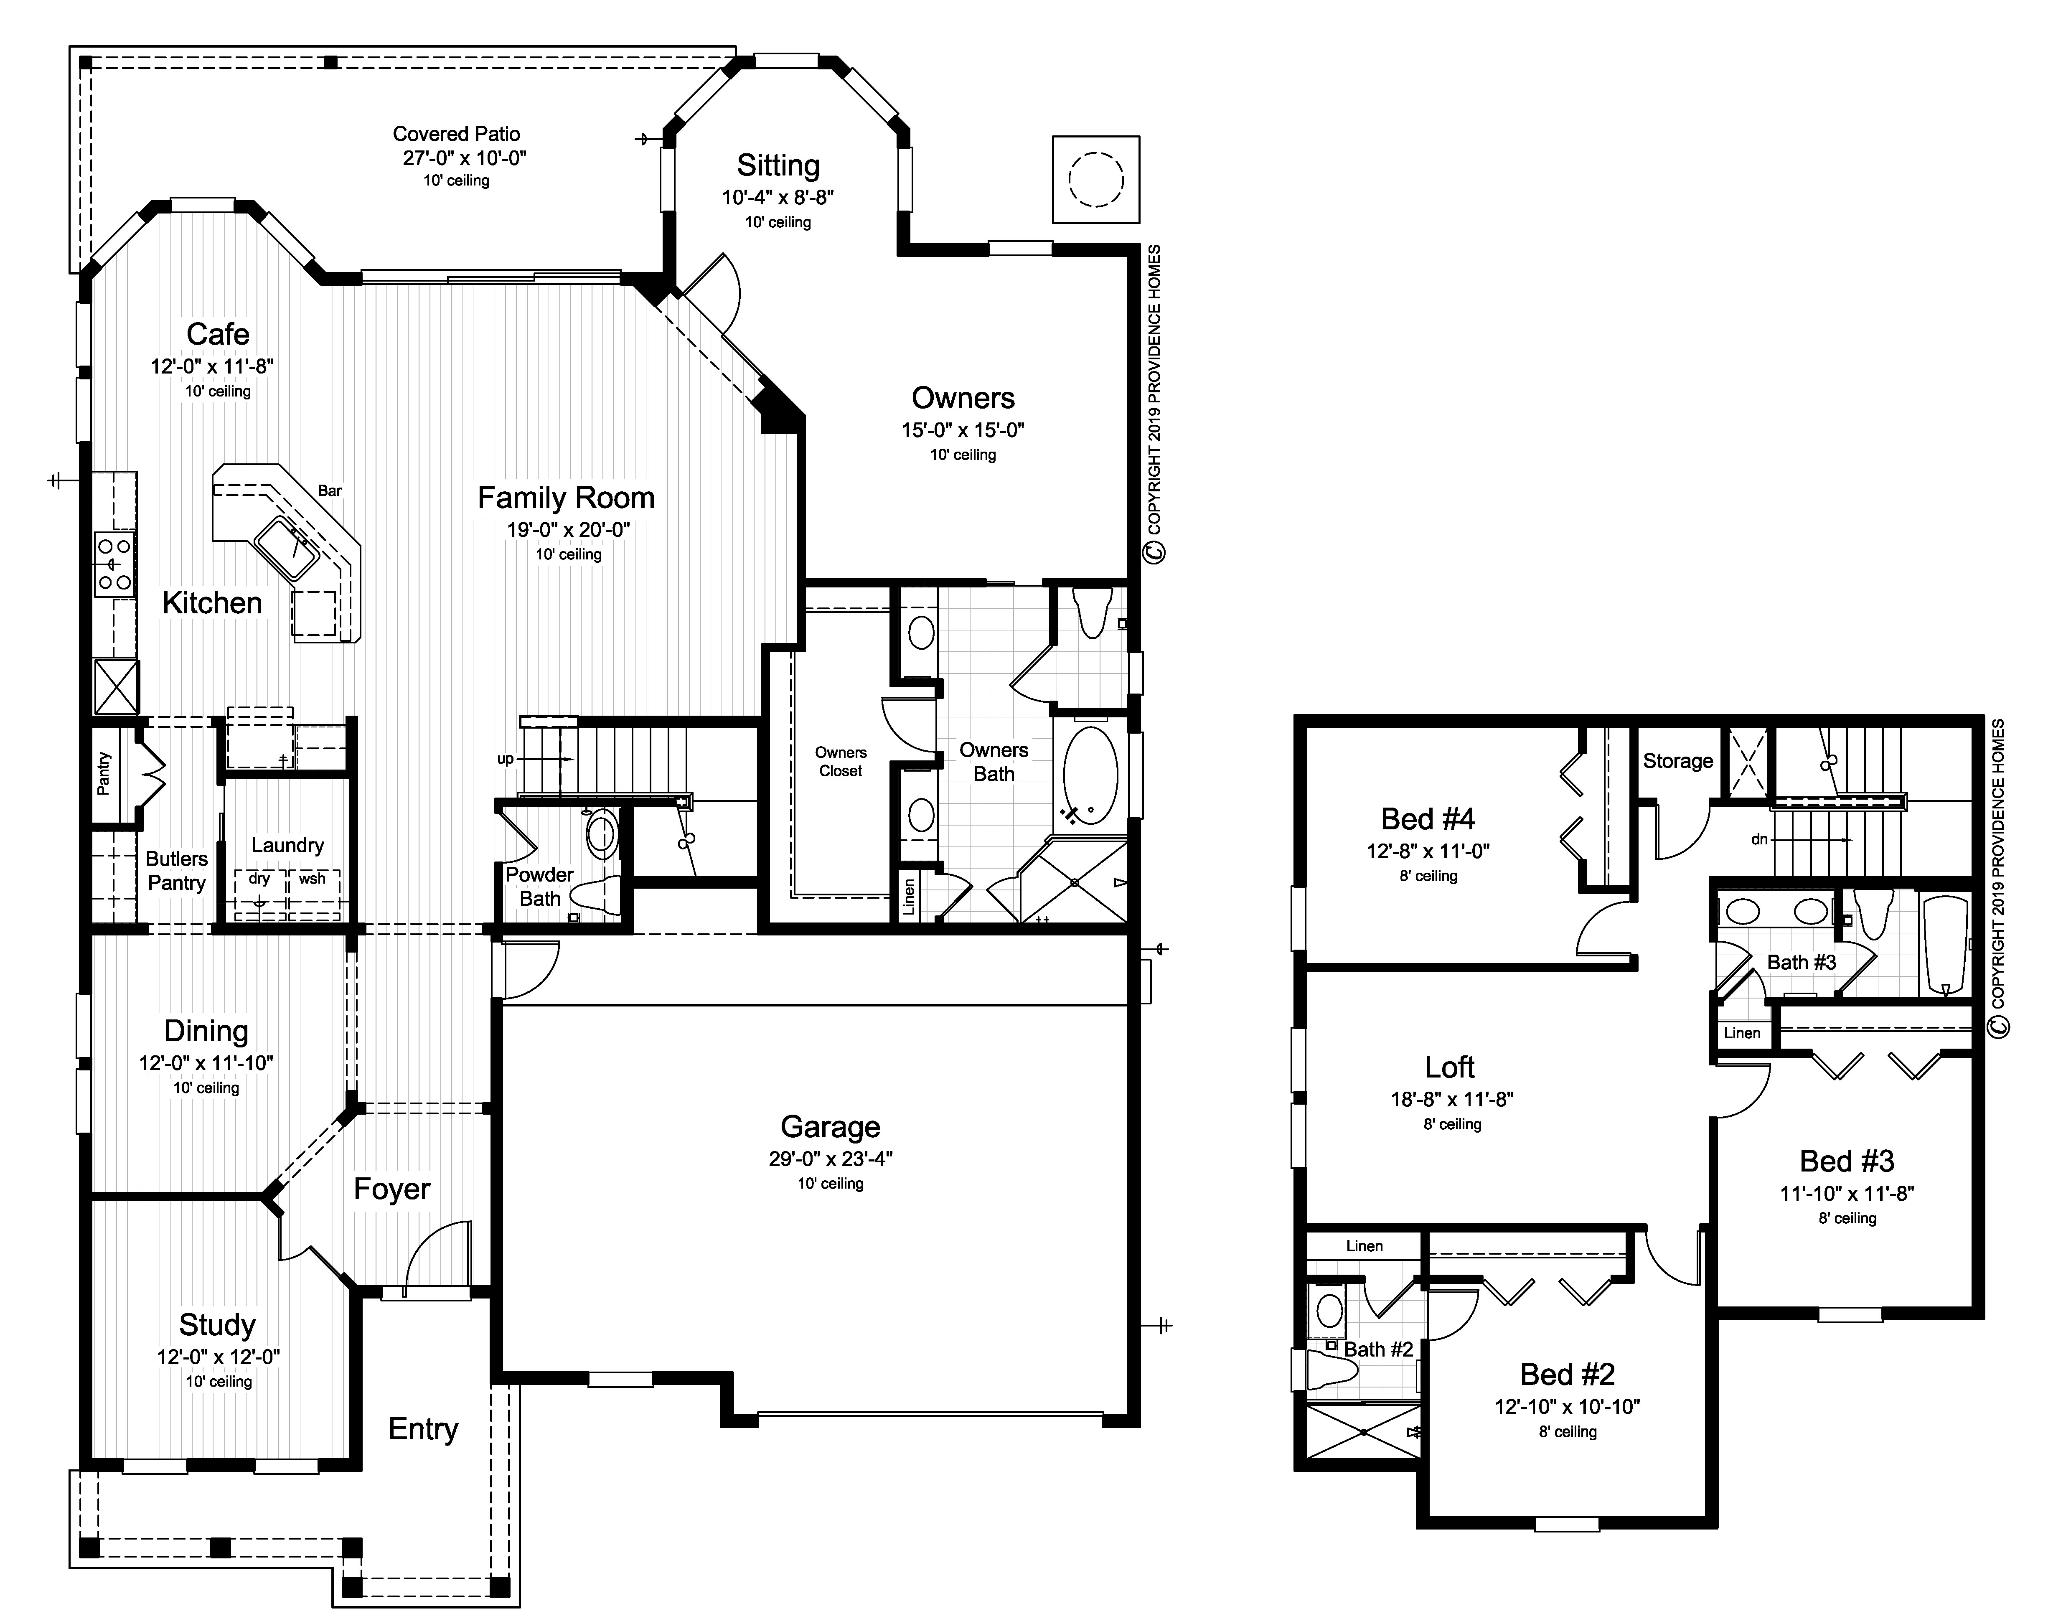 CO221 Floorplan